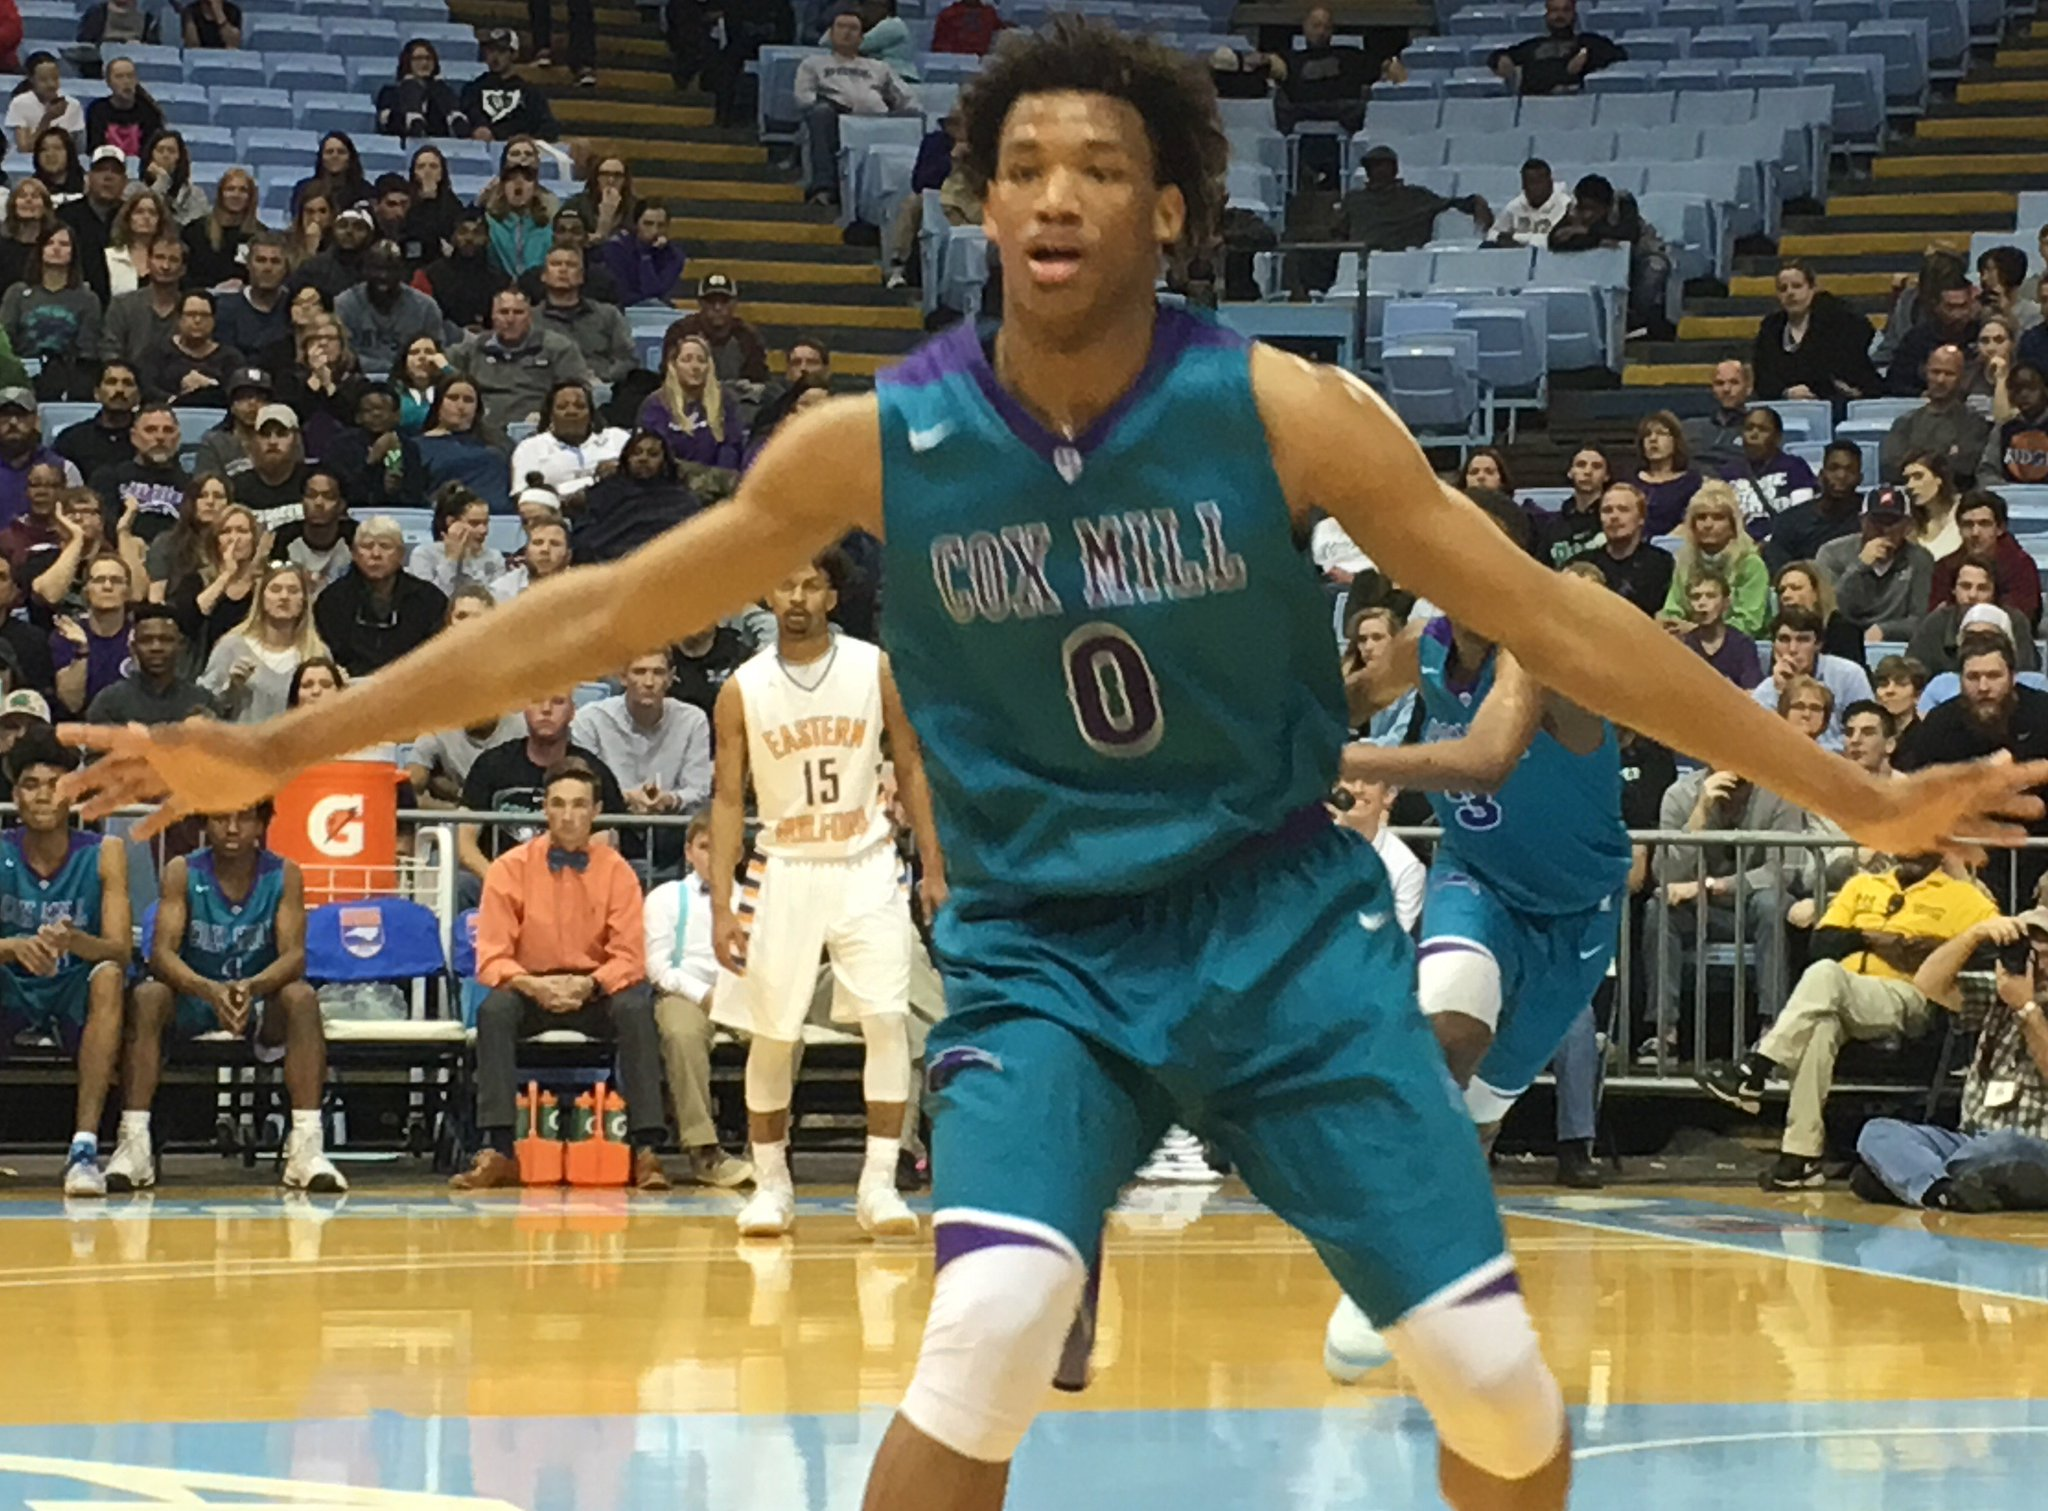 Wendell Moore, 15, drops 29; Cox Mill (in purple & teal) races to NC 3A title (w video) #NCHSAAMBB #clthsbb #NCHSAA  https://t.co/diM1xSOTe7 https://t.co/xKcqWQtzbb